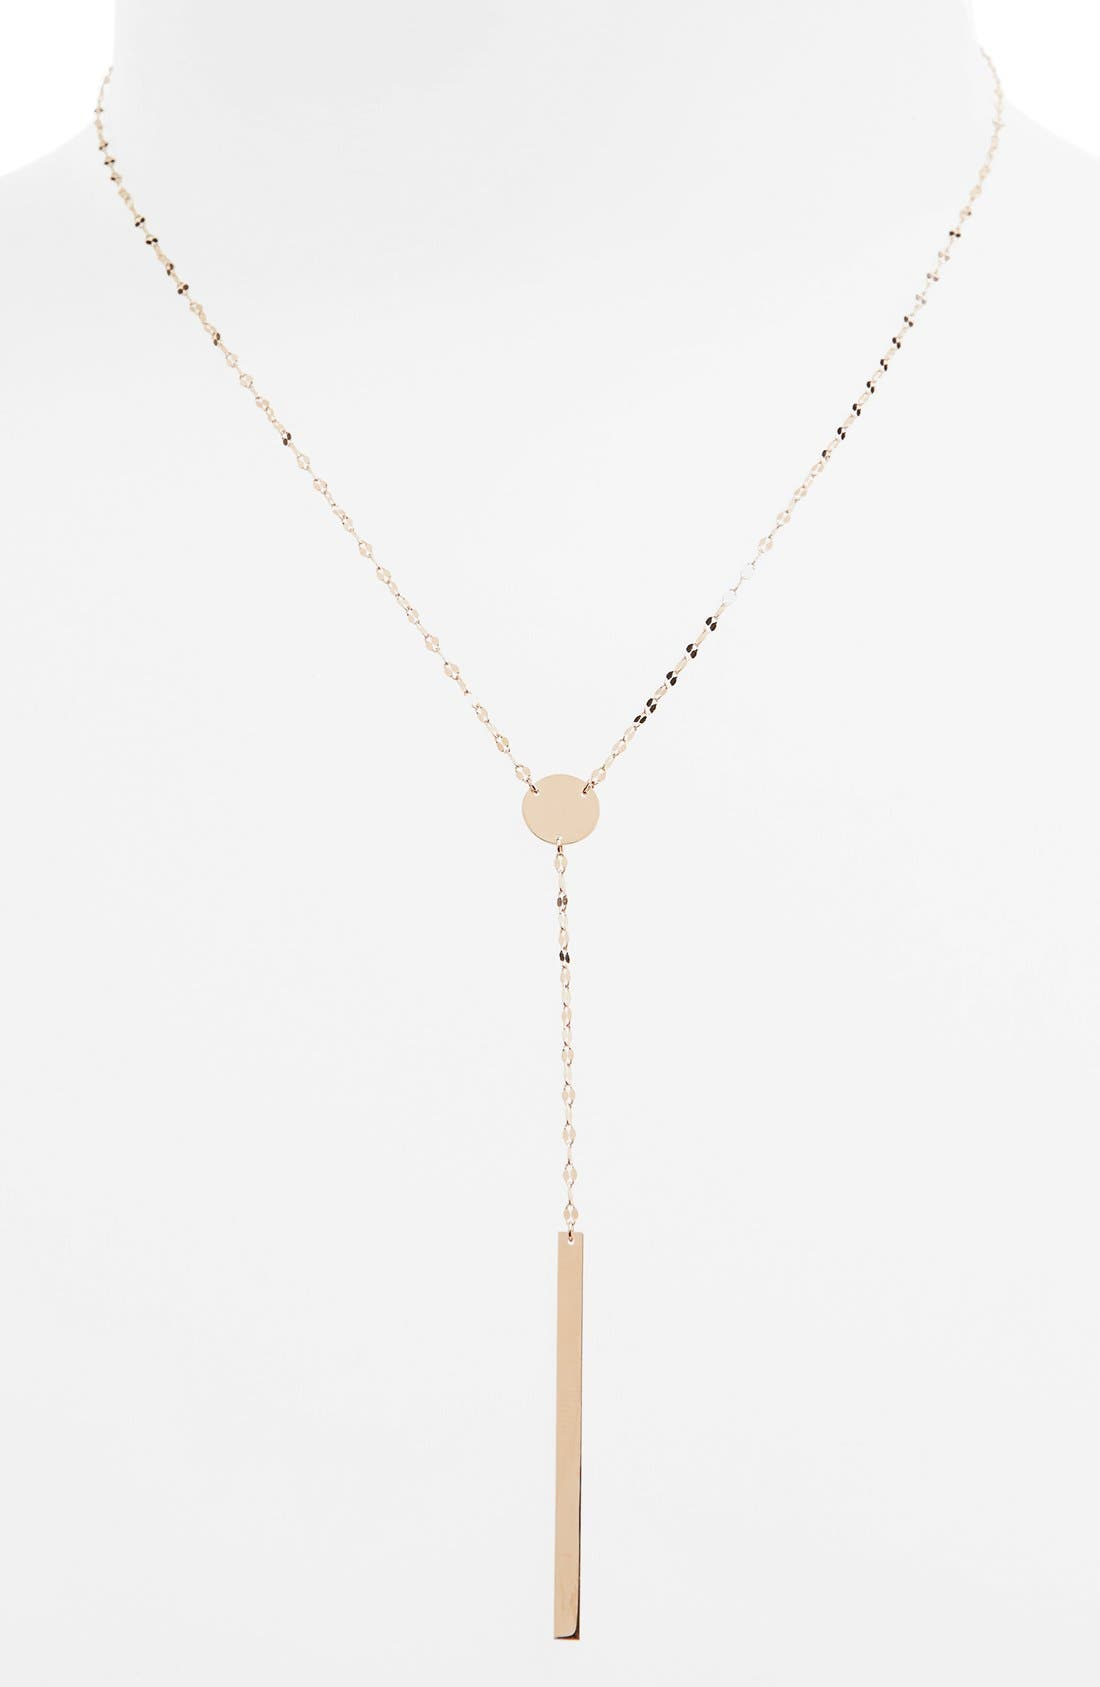 Lana Jewelry for Women Nordstrom